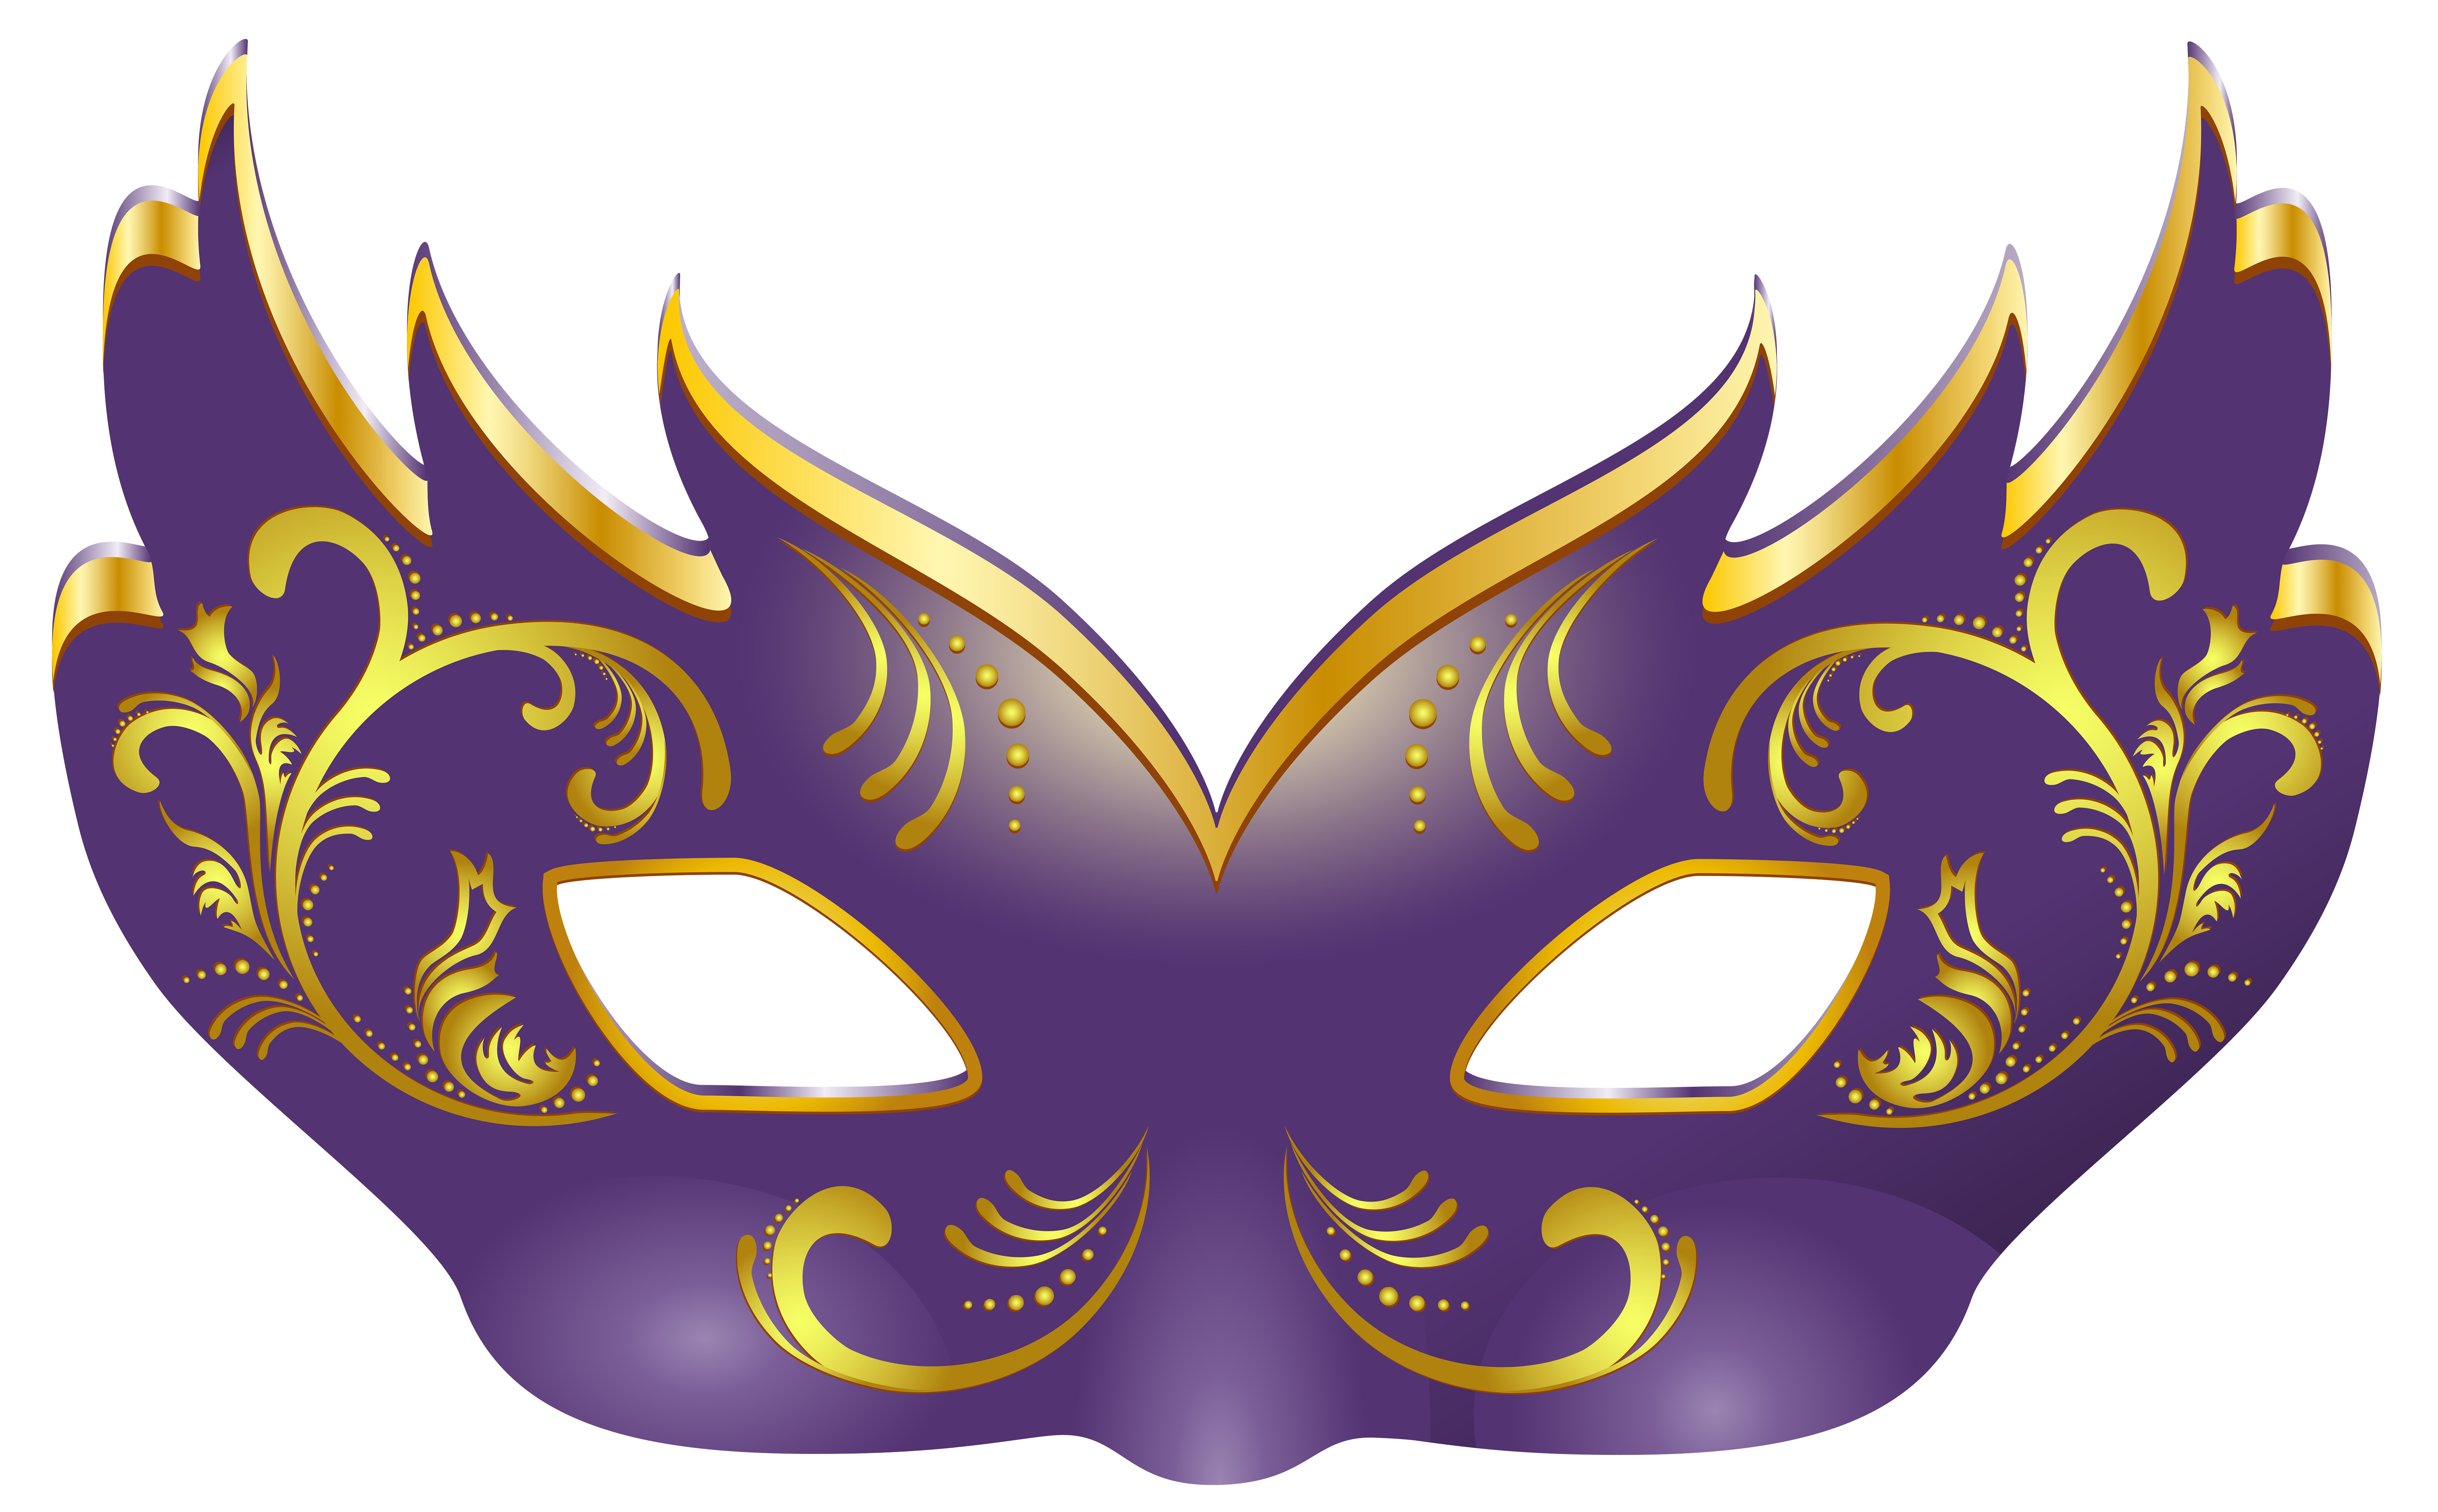 Mardis gras crown clipart clipart royalty free stock 28+ Collection of Mardi Gras Mask Clipart Png | High quality, free ... clipart royalty free stock